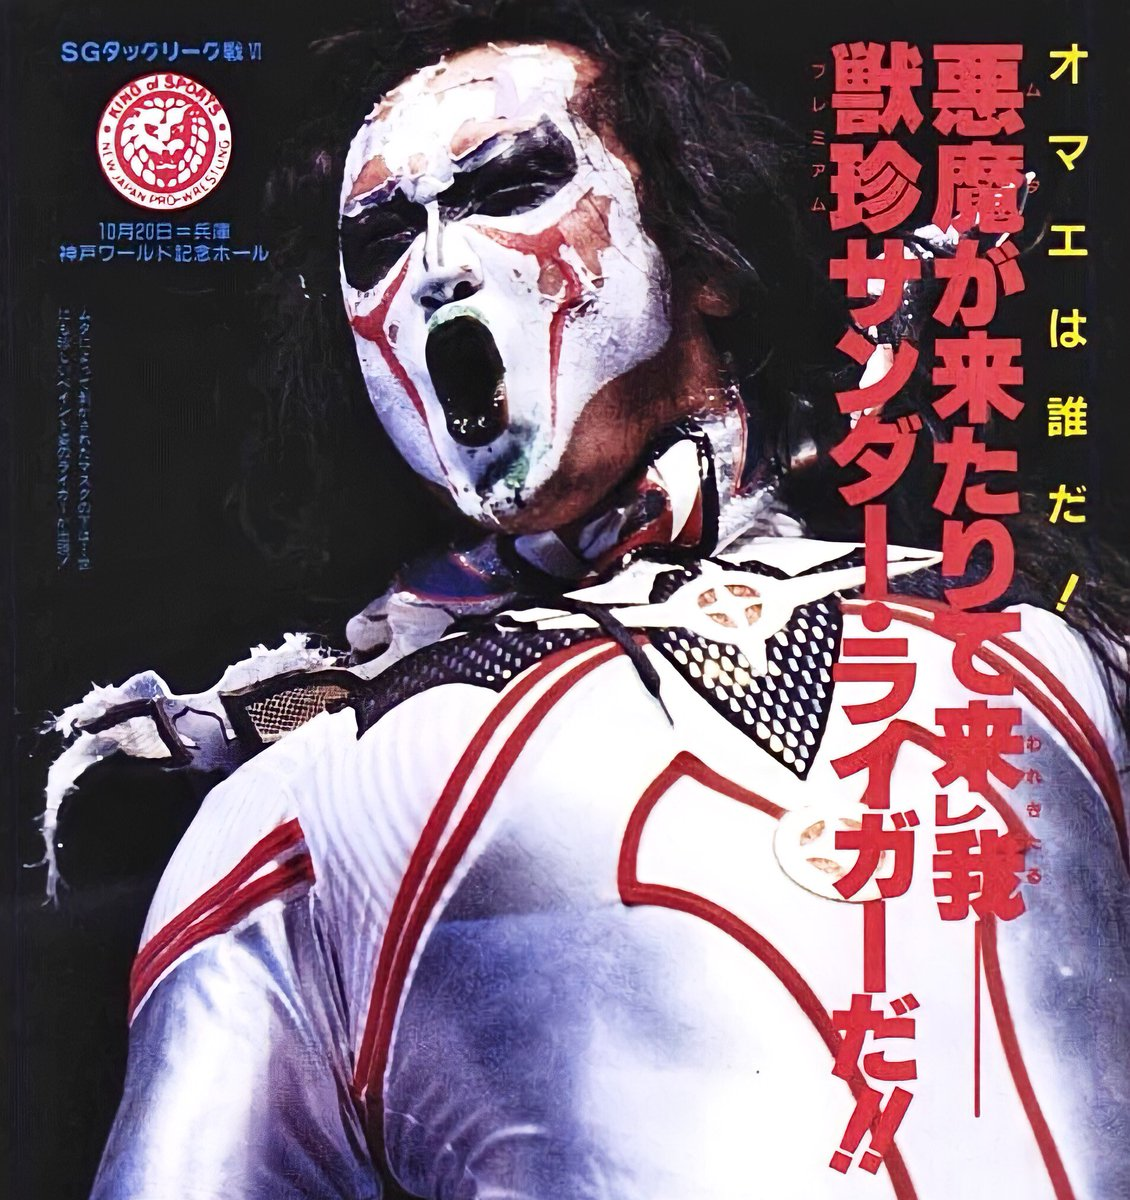 October 20, 1996. The Great Muta tears open the mask of Jushin Liger and inadvertently conjures a demon. #鬼神ライガー #KishinLiger #獣神ライガー #njpw